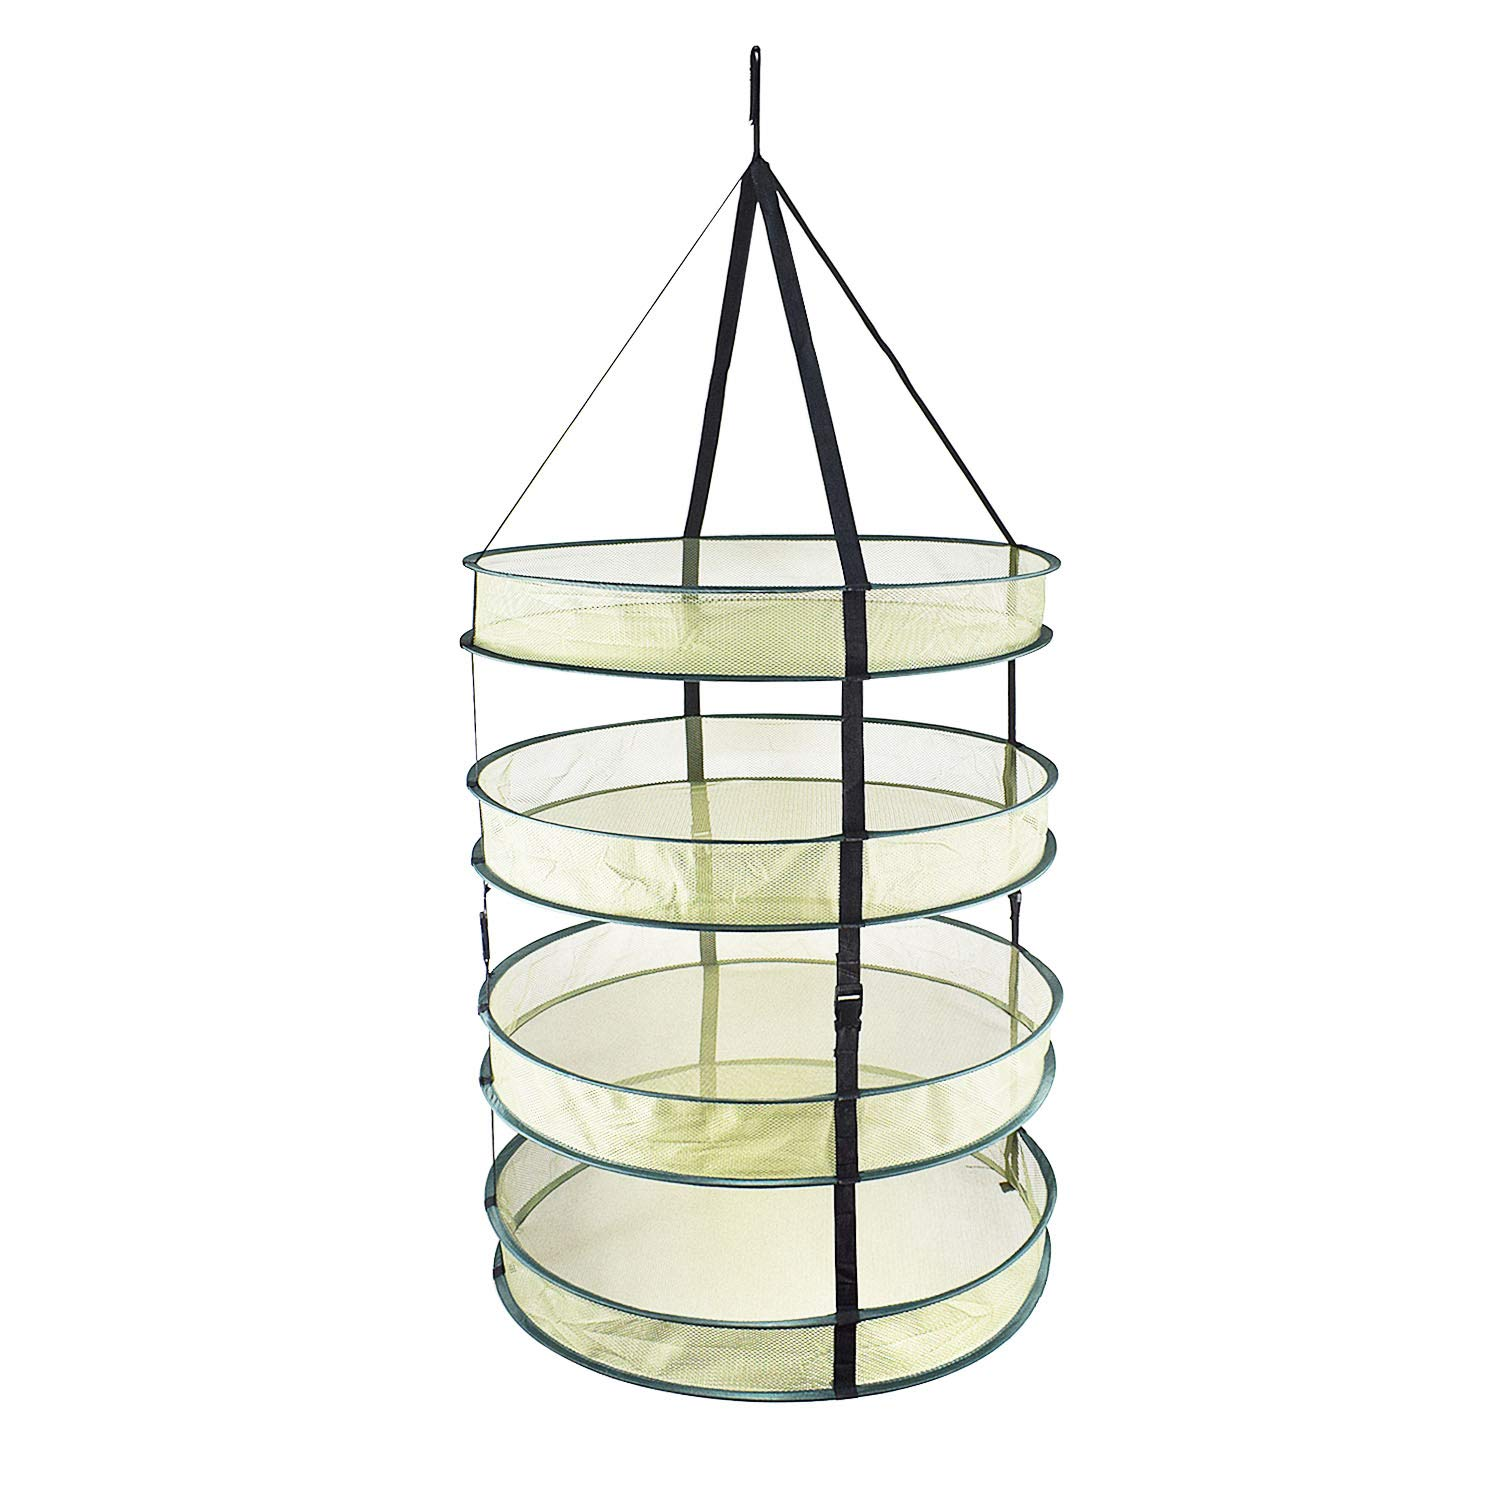 Drying Net Drying Rack for Herbs Adjustable Detachable Dryer Collapsible Hangning Dryer 4-Layers by Eachon